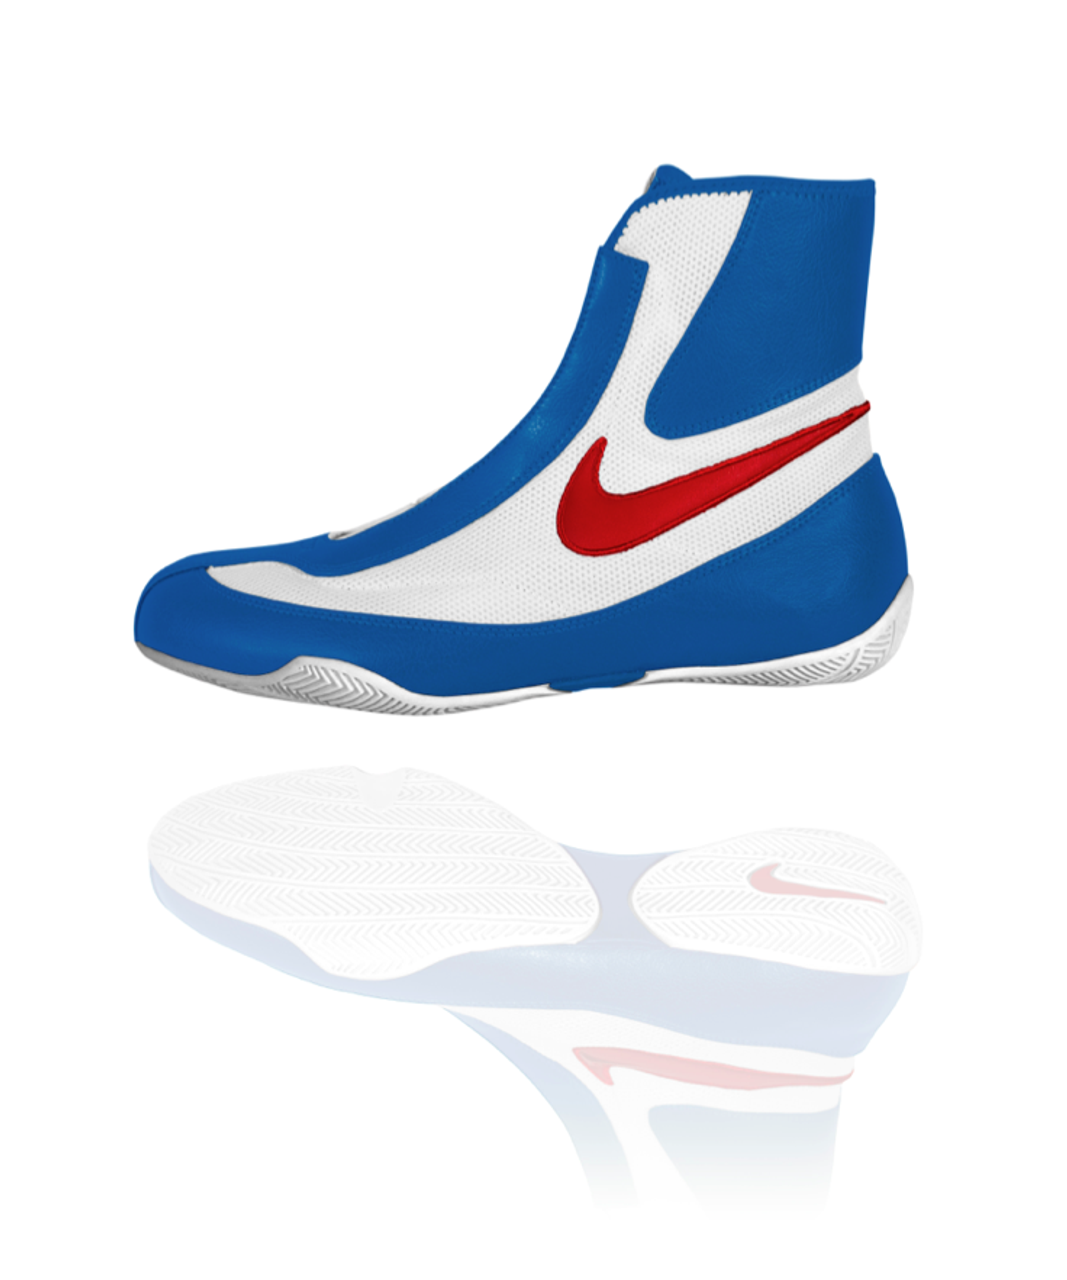 NIKE Machomai MID TOP Boxing Shoes - Red   White   Blue Color - PROGEAR 6c4c799f5